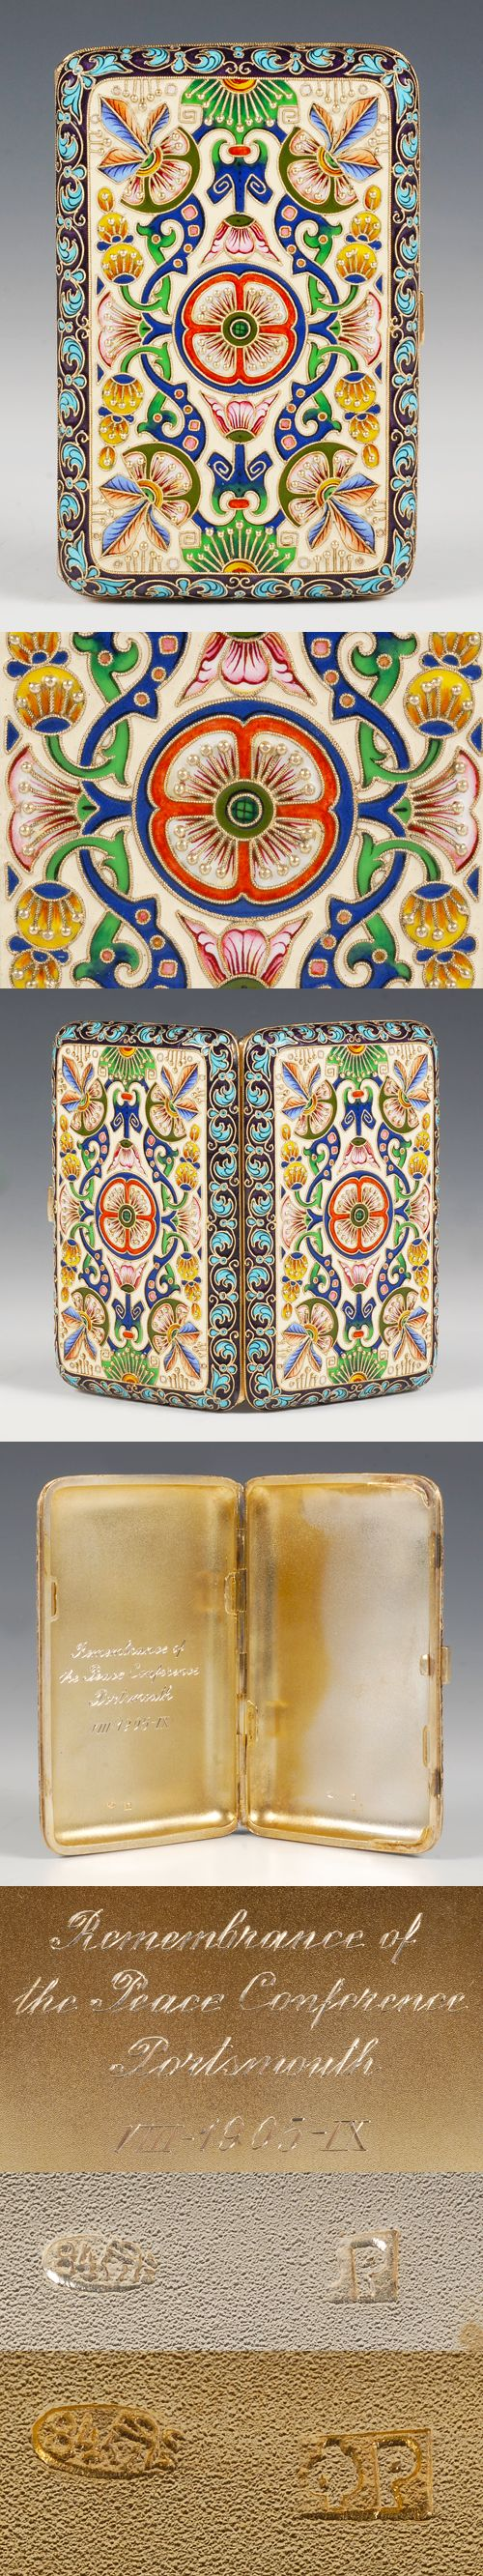 A Russian silver and shaded cloisonne enamel cigarette case, Feodor Ruckert, Moscow, circa 1896-1908. Both sides decorated in multi-color shaded enamel scroll, floral and geometric motifs within a border of stylized turquoise colored floral designs against a purple ground. Inscription on the interior dated 1905